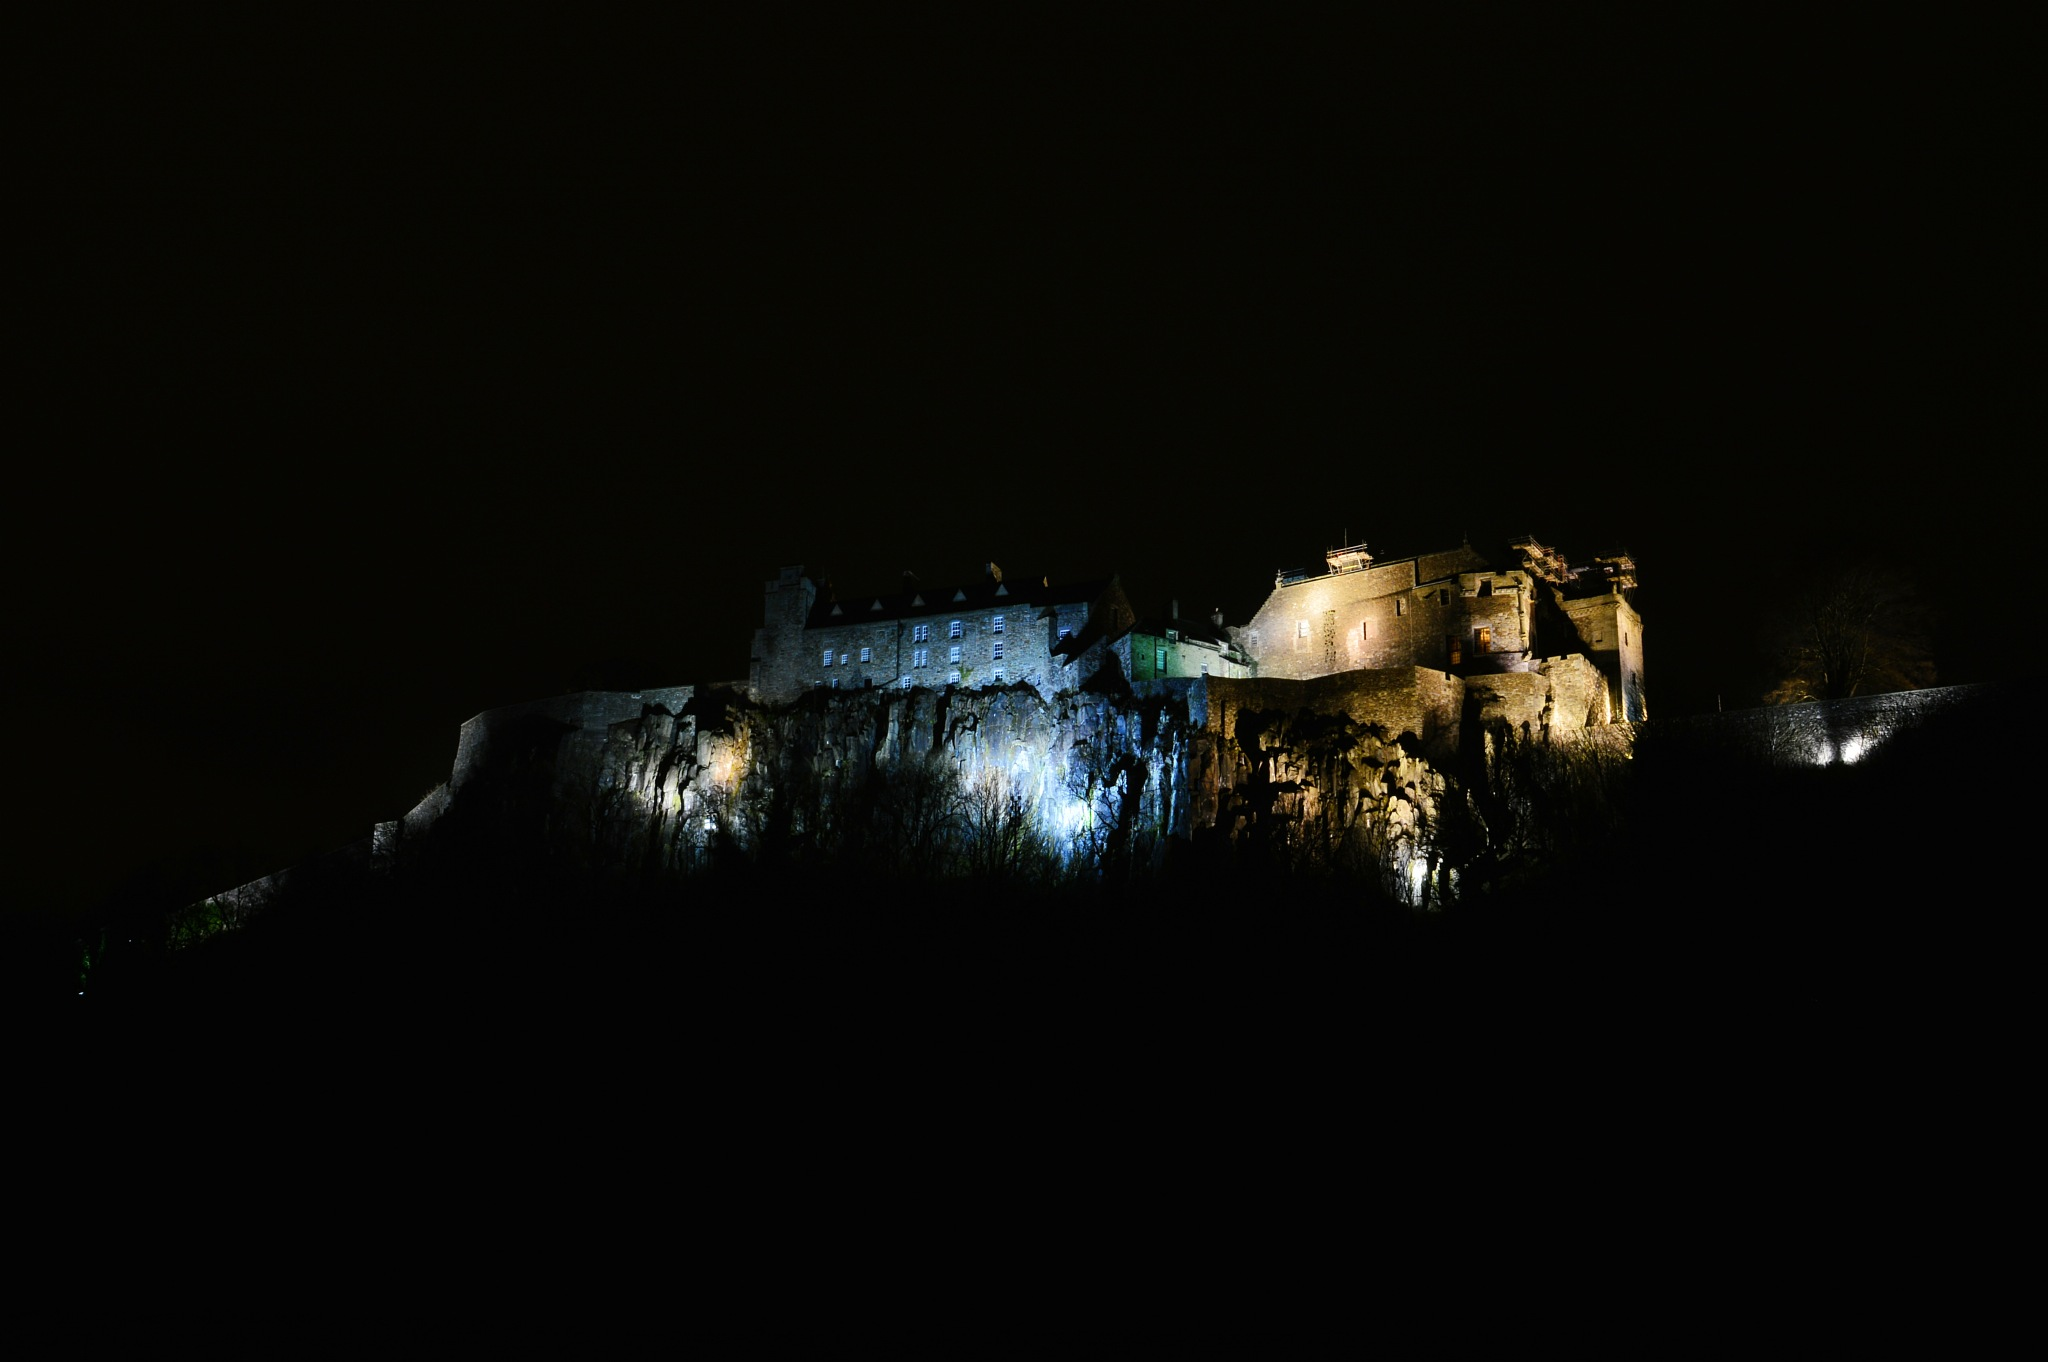 Stirling Castle at night by Niknak